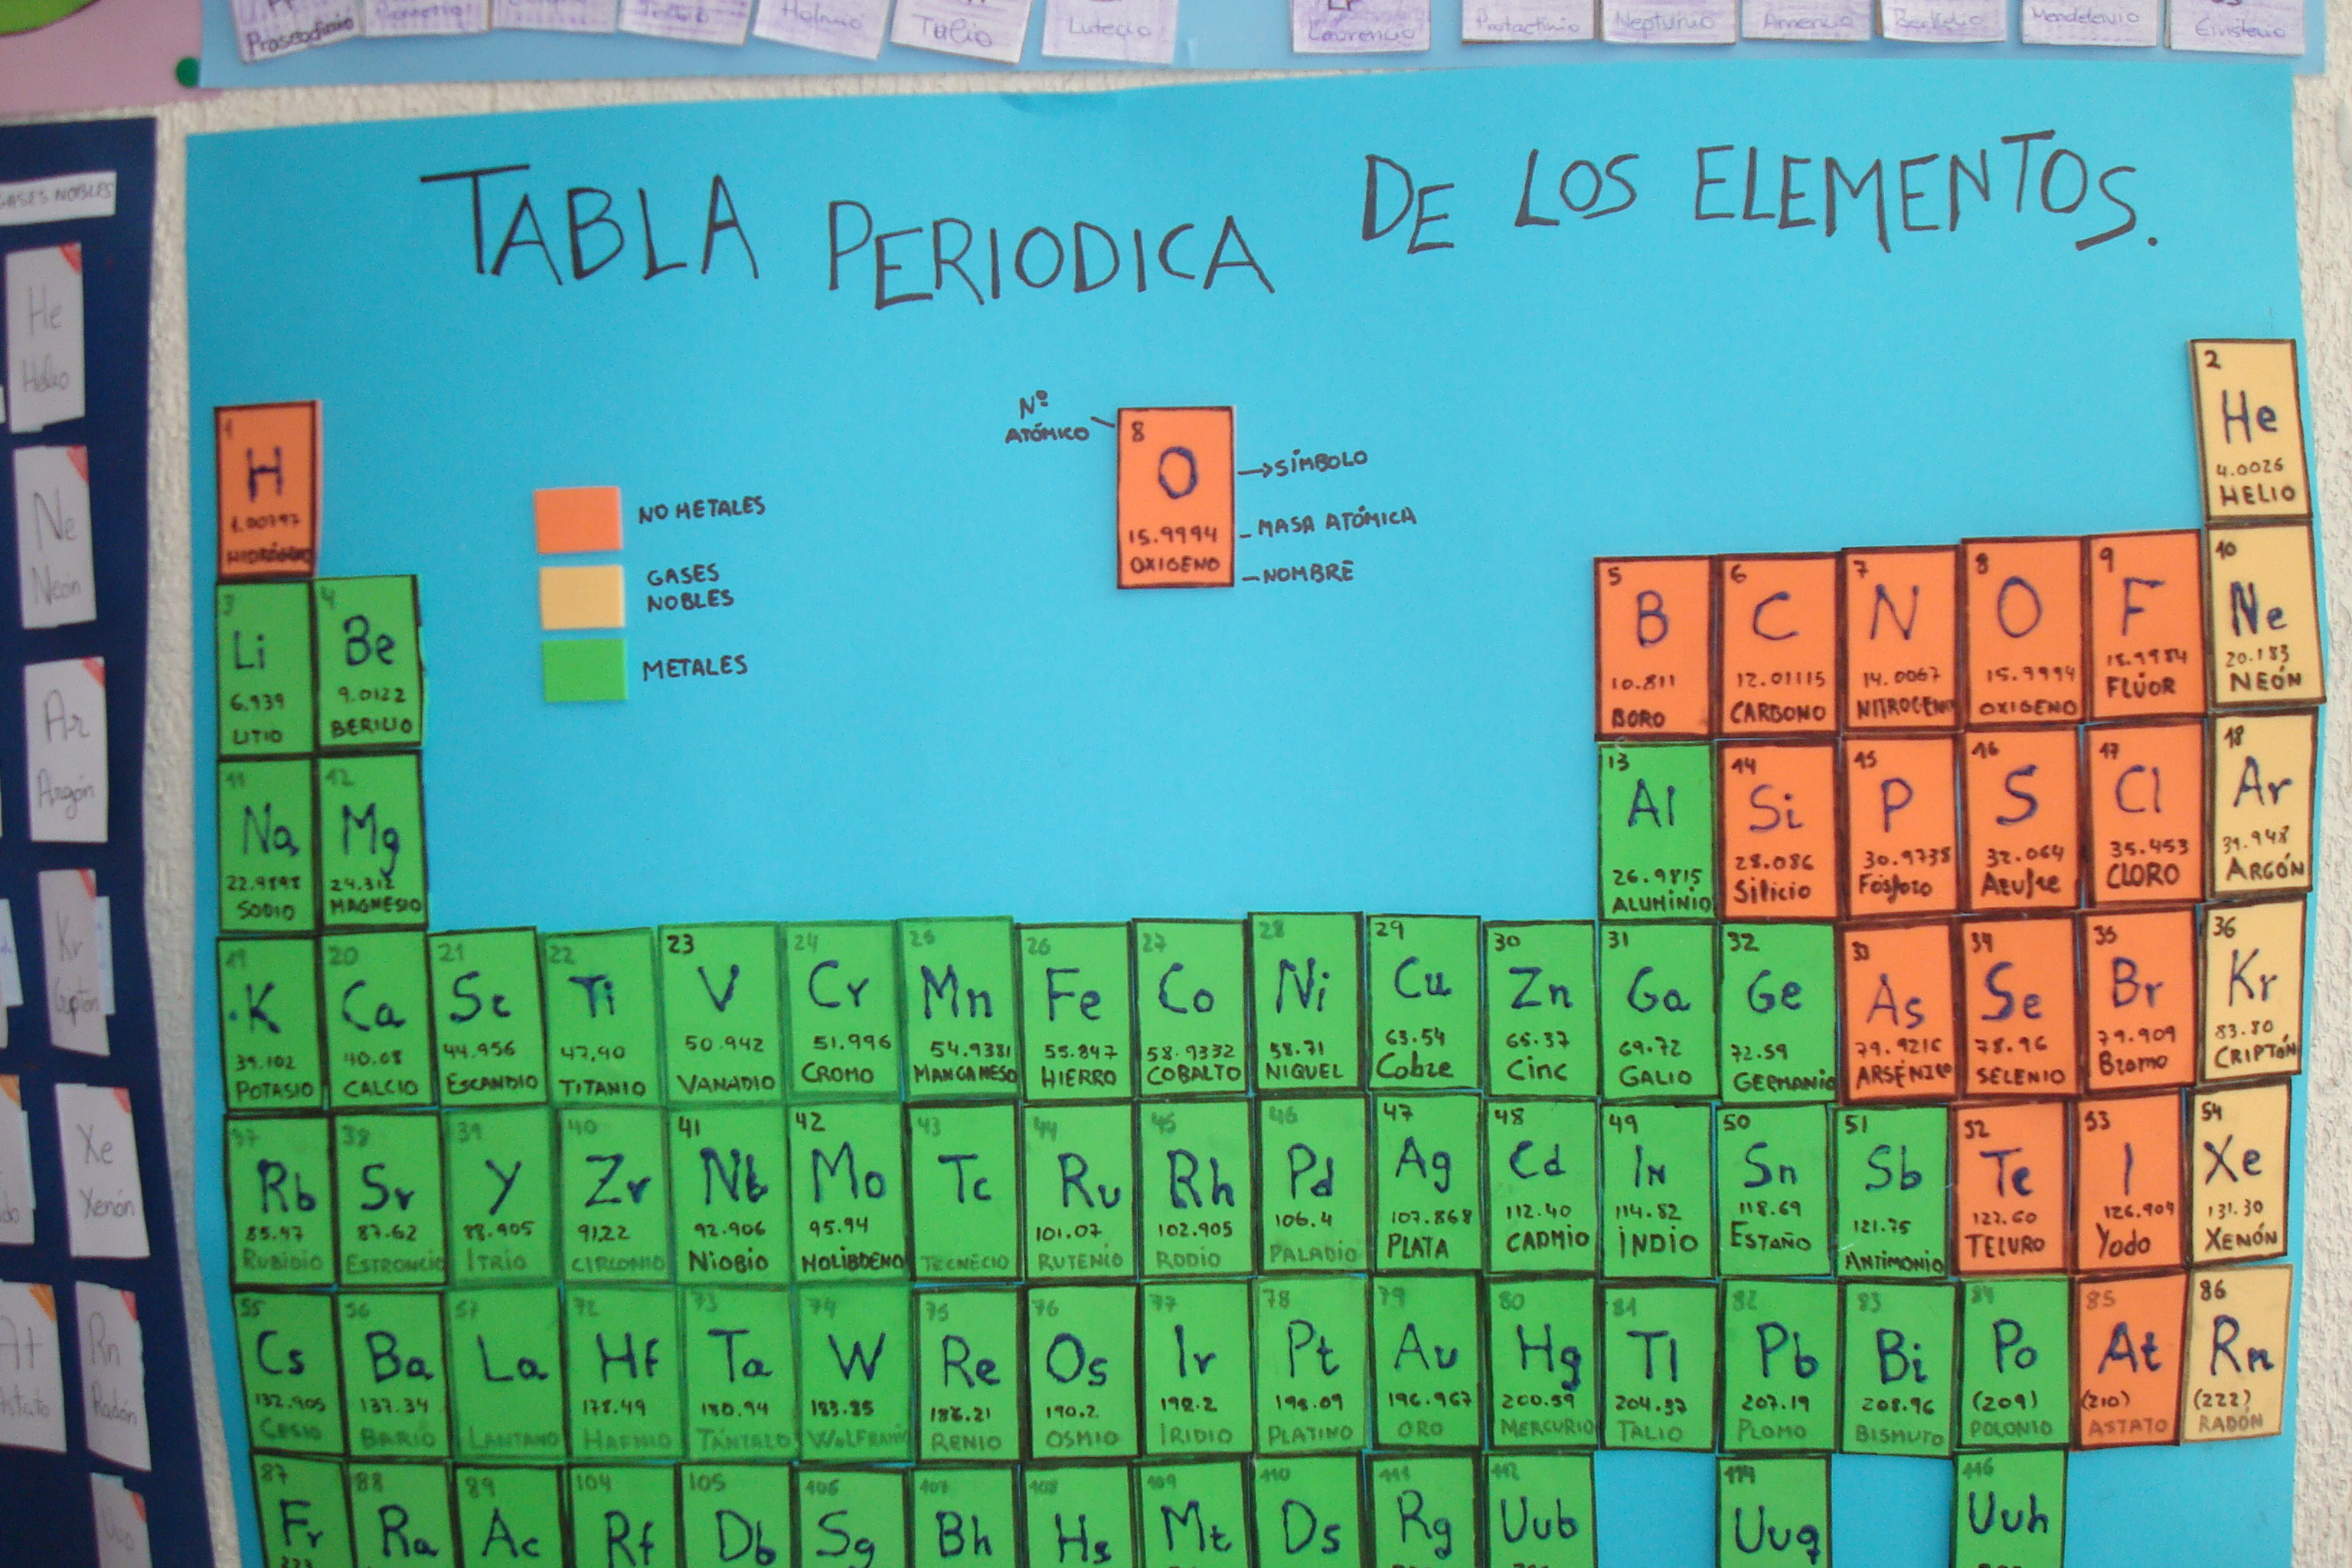 Tabla peridica de elementos qumicos periodic tables of the spang urtaz